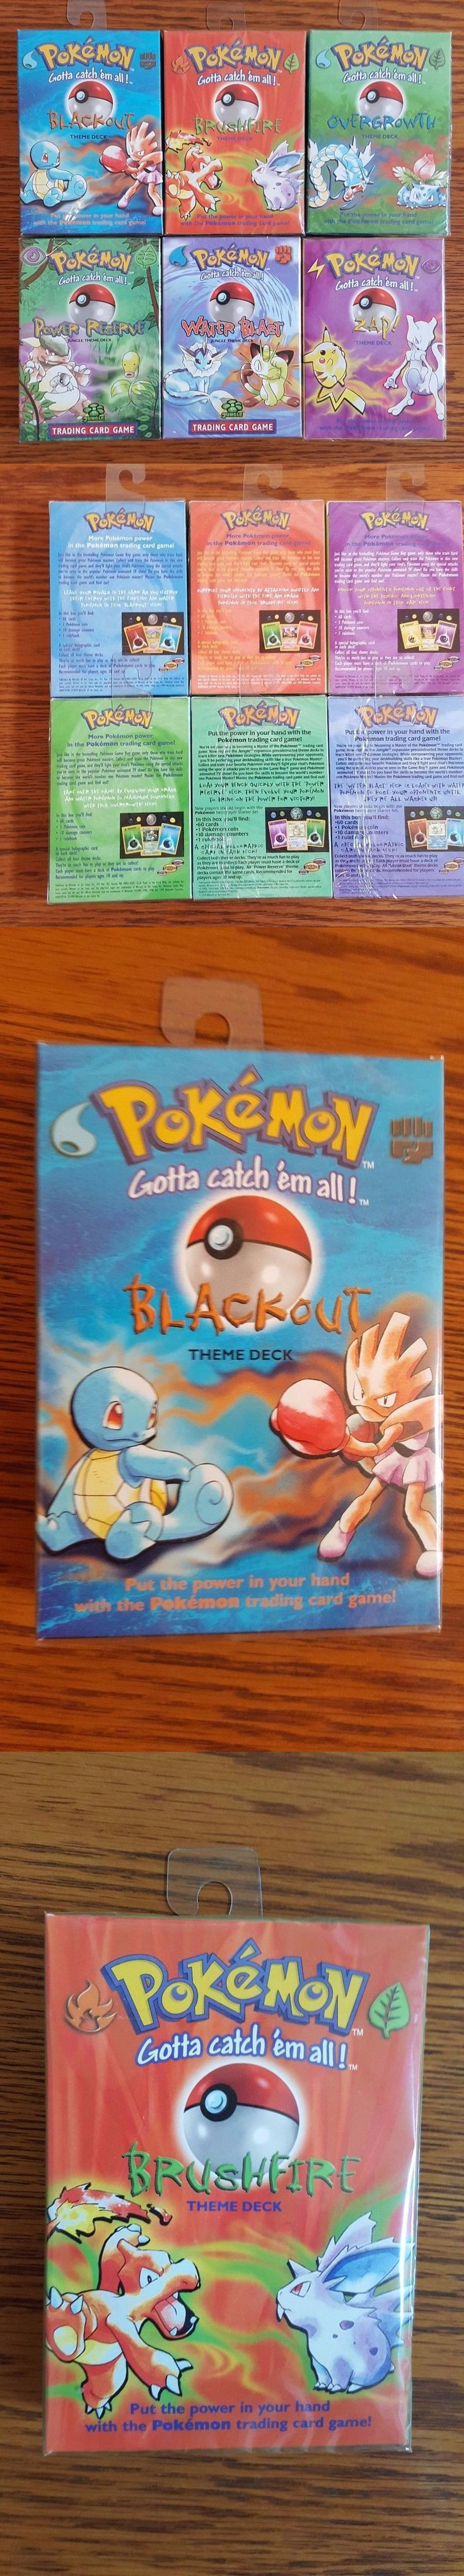 Pok mon Sealed Decks and Kits 183467: Pokemon Theme Decks Sealed, Unopened, New, Perfect Condition -> BUY IT NOW ONLY: $249 on eBay!